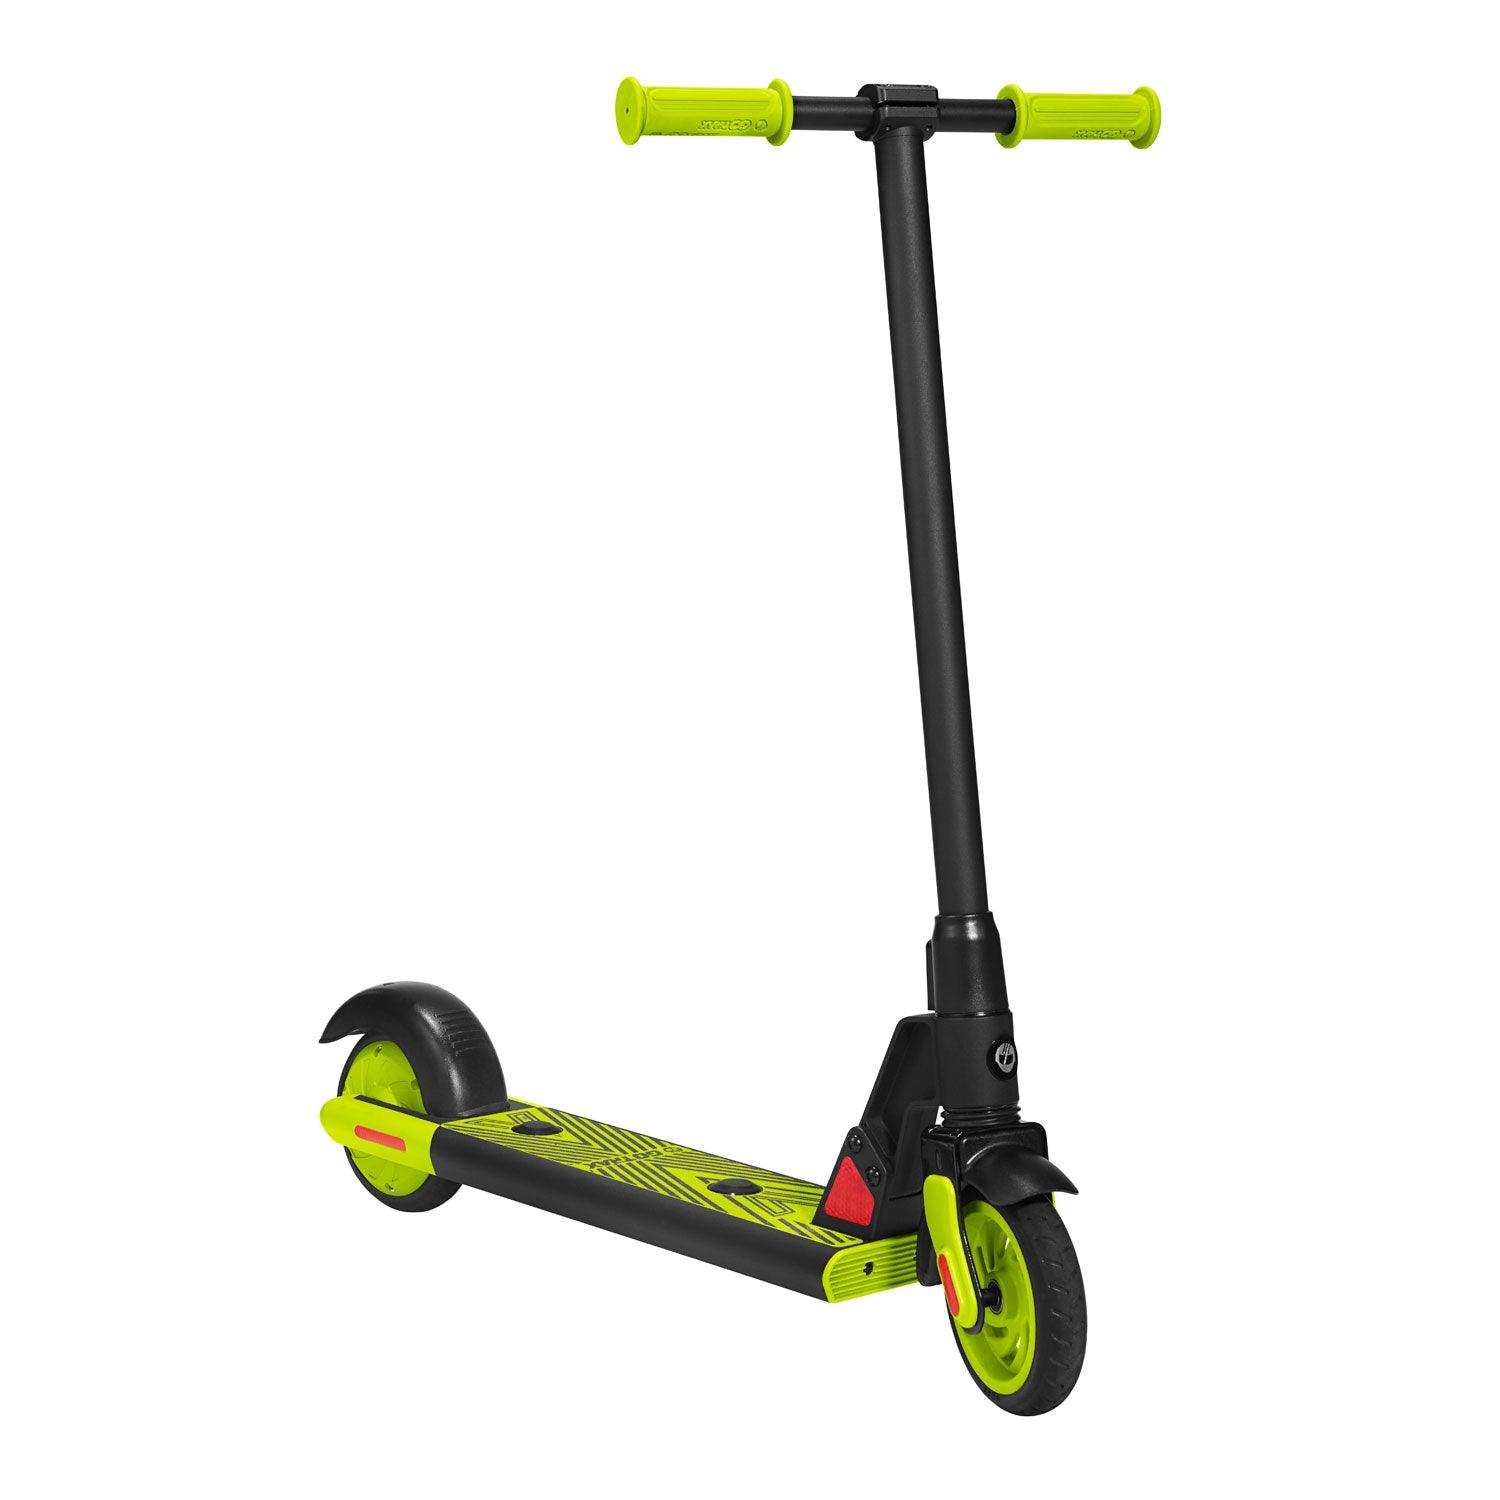 Green gks electric scooter for kids angle image